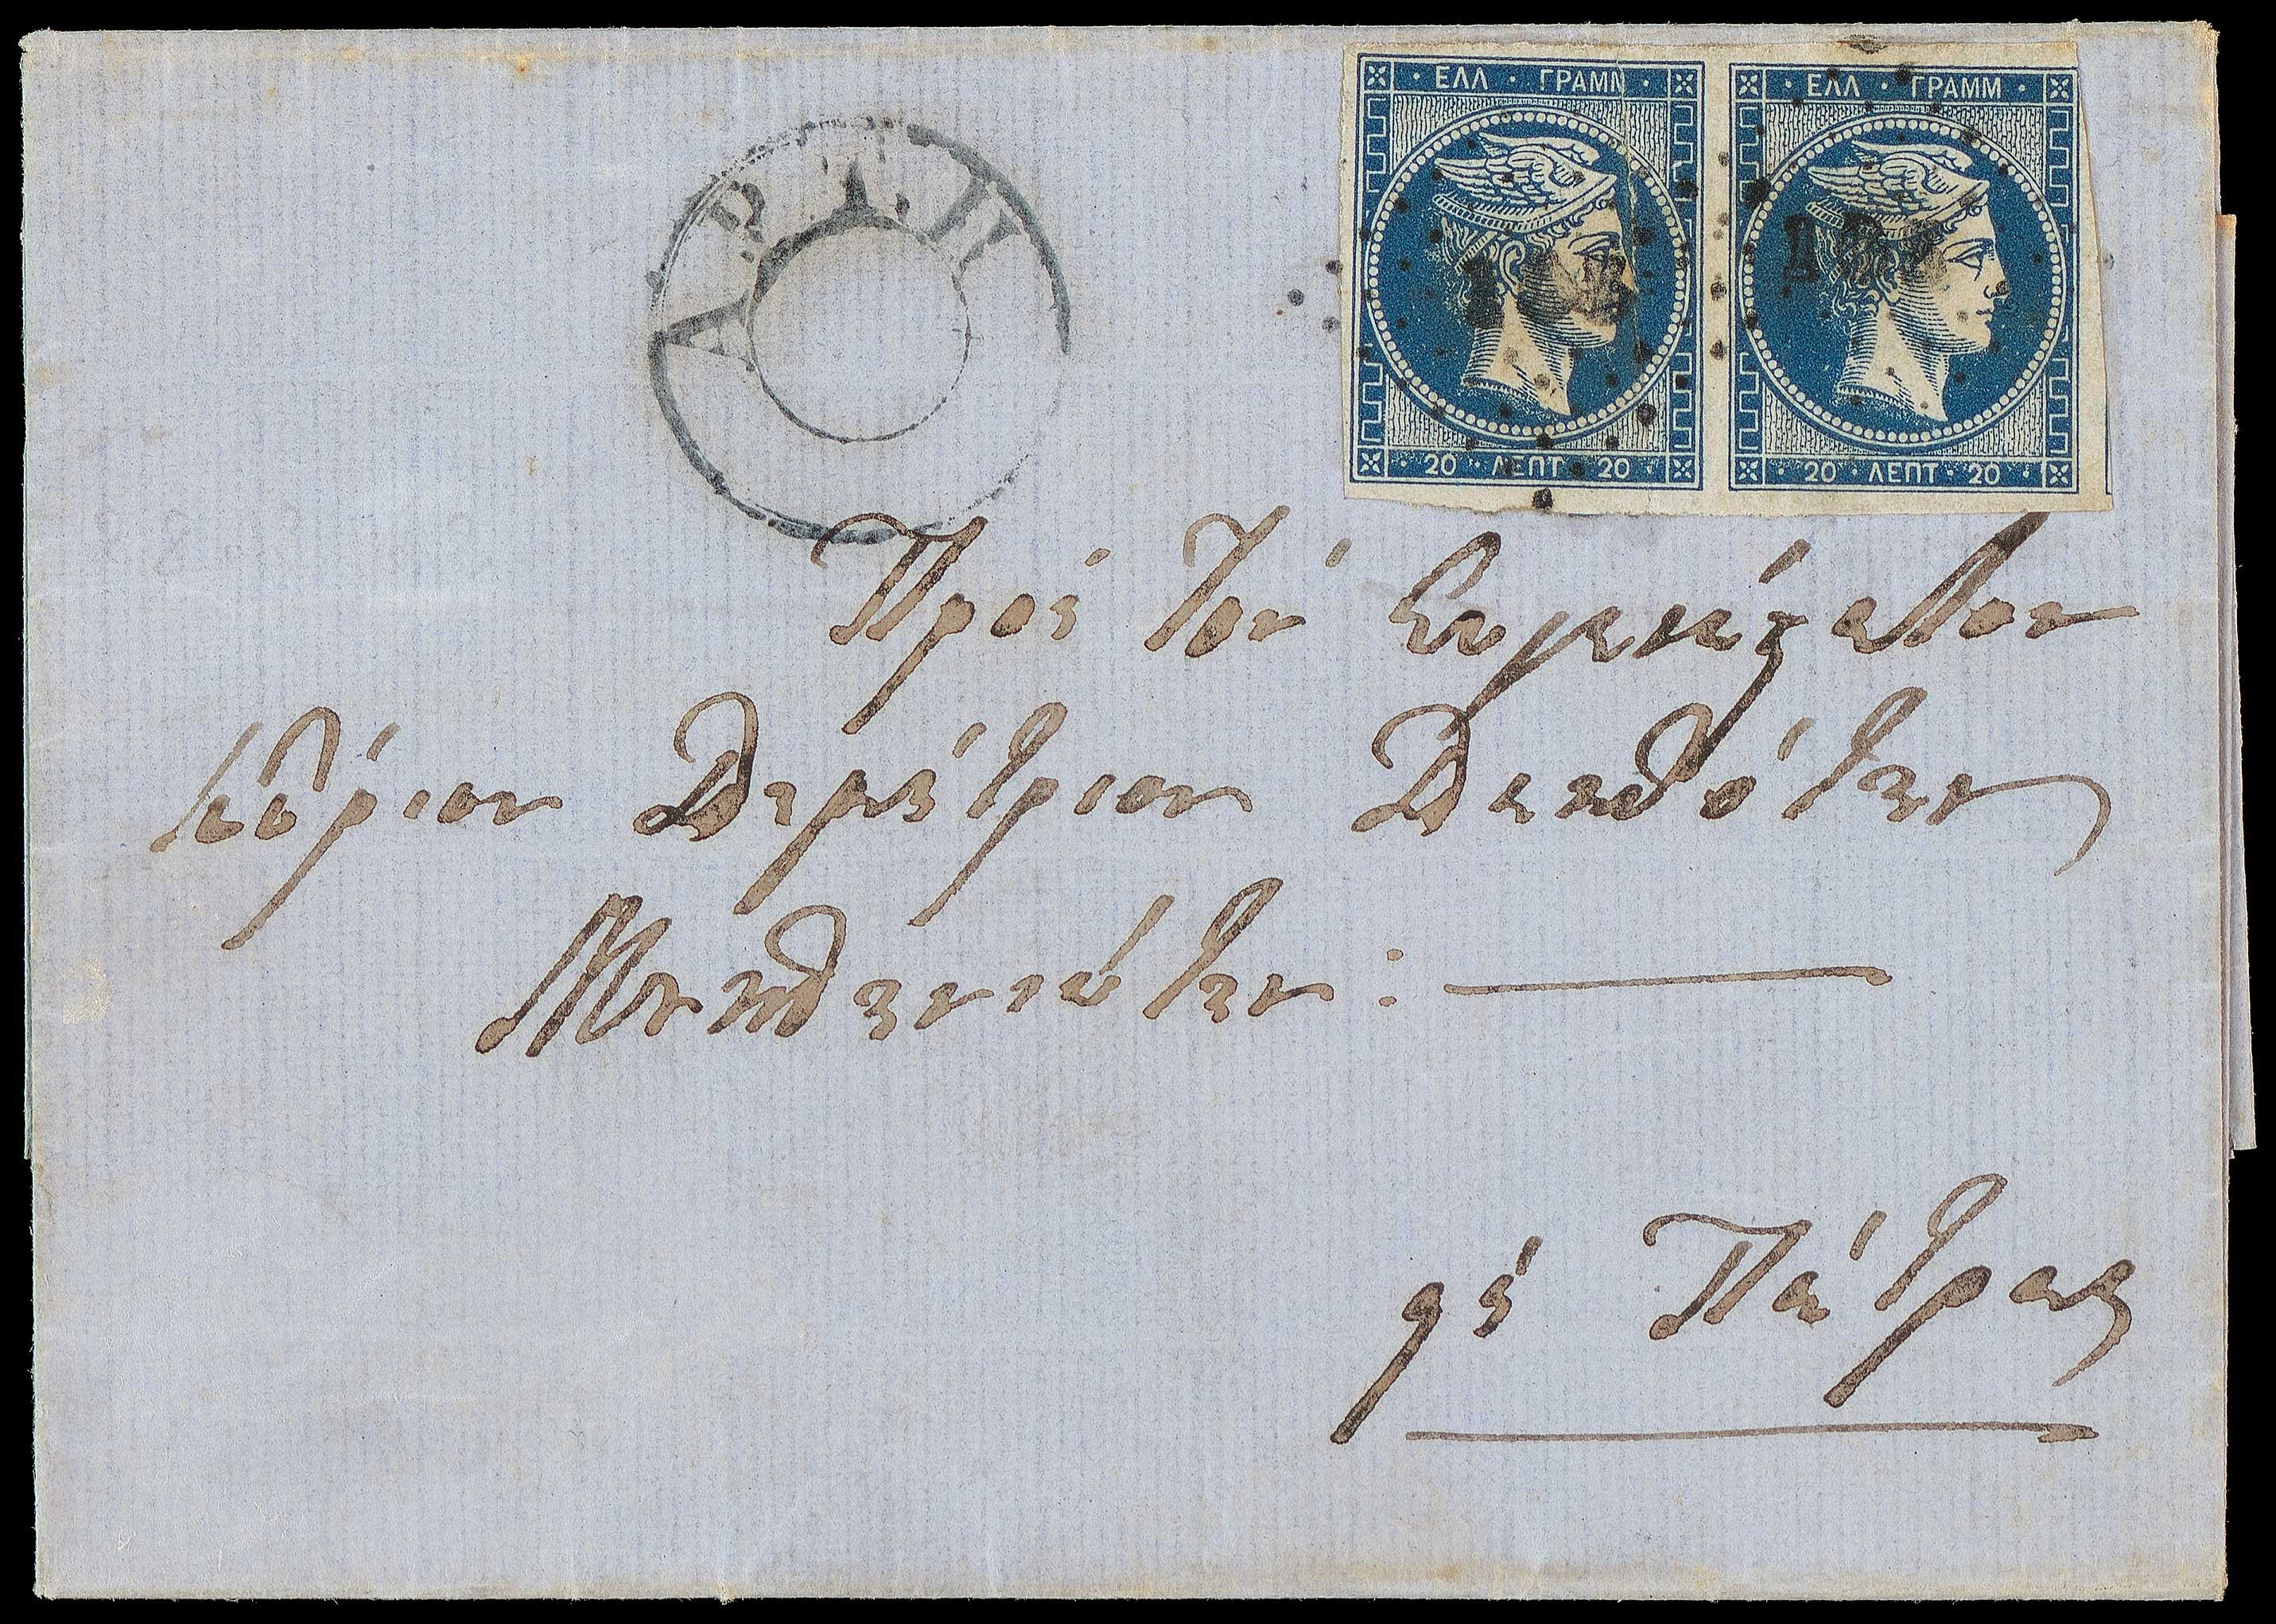 Lot 64 - -  LARGE HERMES HEAD 1861/1862 athens provisional printings -  A. Karamitsos Public & Live Internet Auction 666 Large Hermes Heads Exceptional Stamps from Great Collections